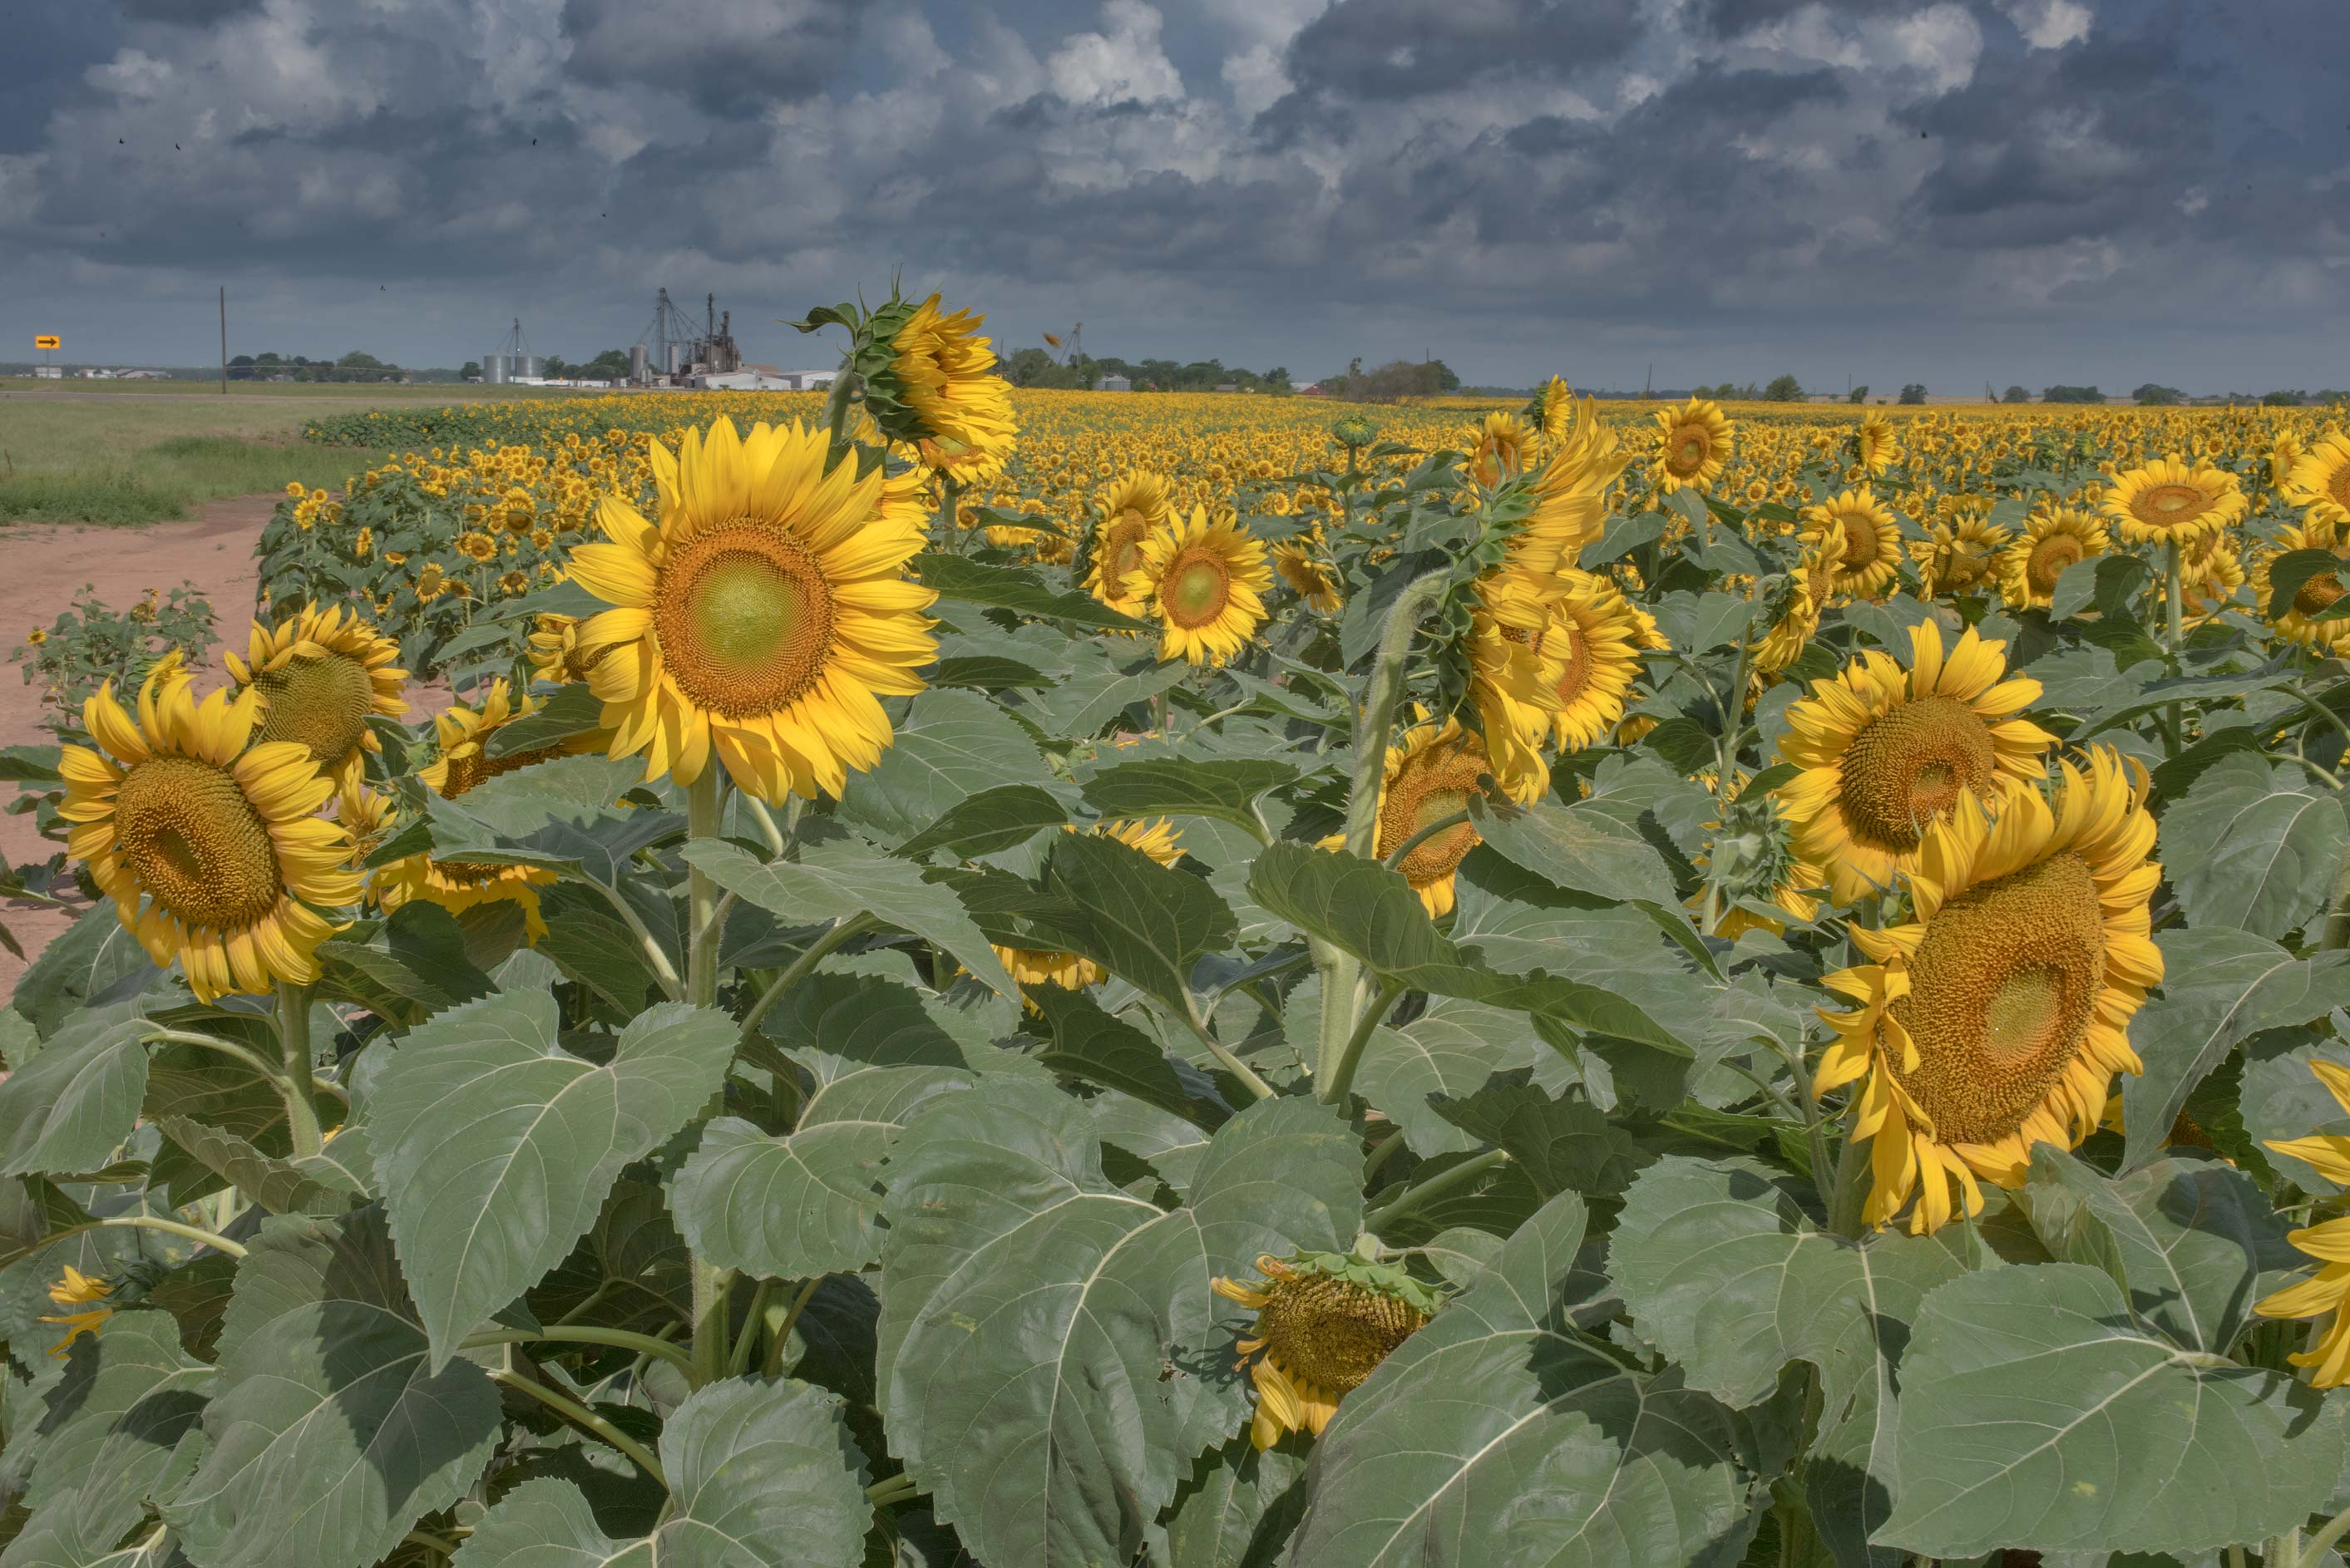 Sunflowers (Helianthus annuus) on Tom Moore Rd.. Washington, Texas